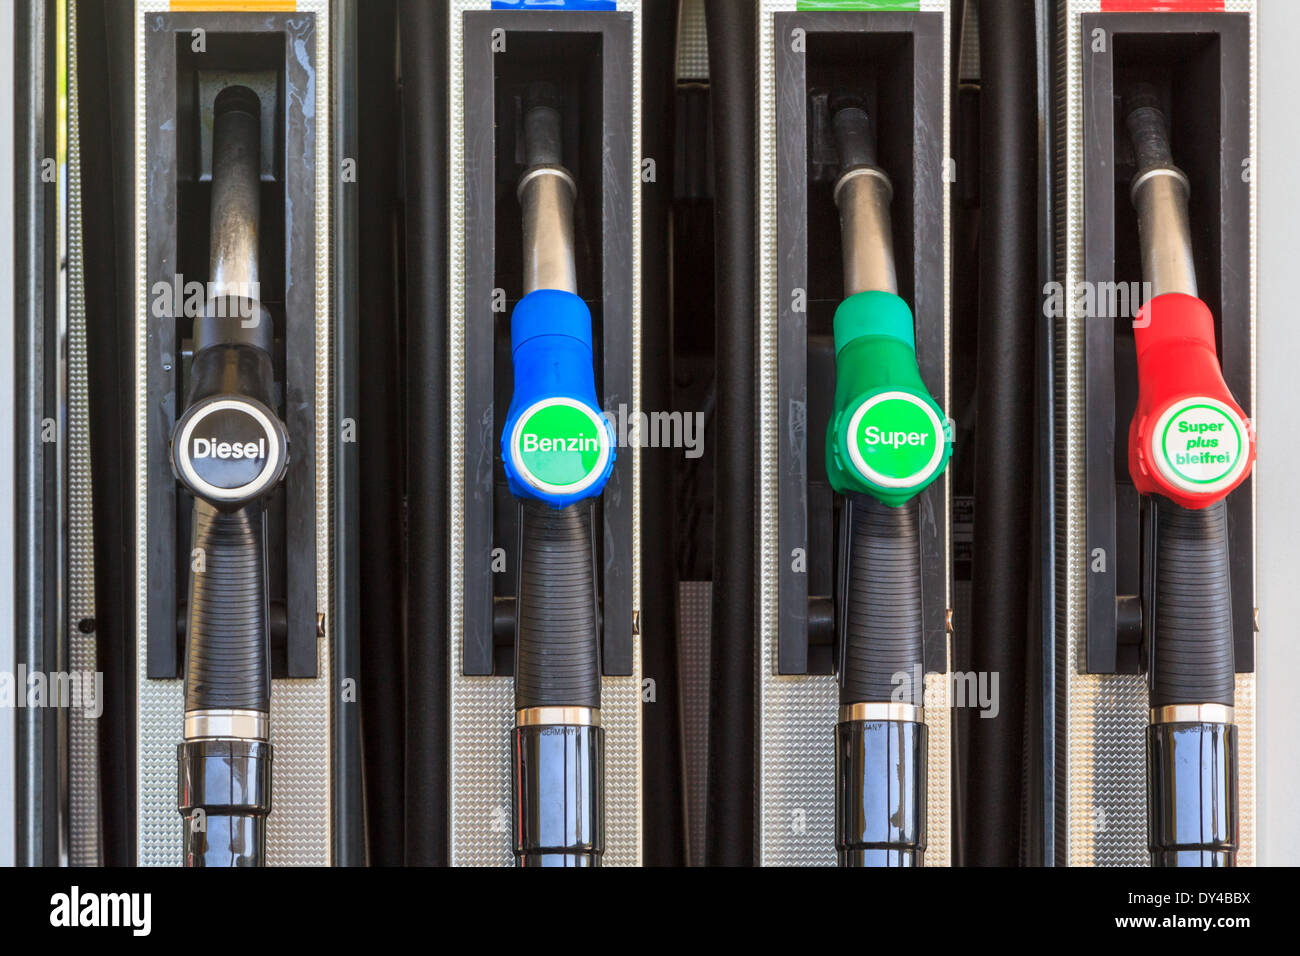 Four nozzles on a gas station in Austria, Europe offering diesel and super benzine Stock Photo